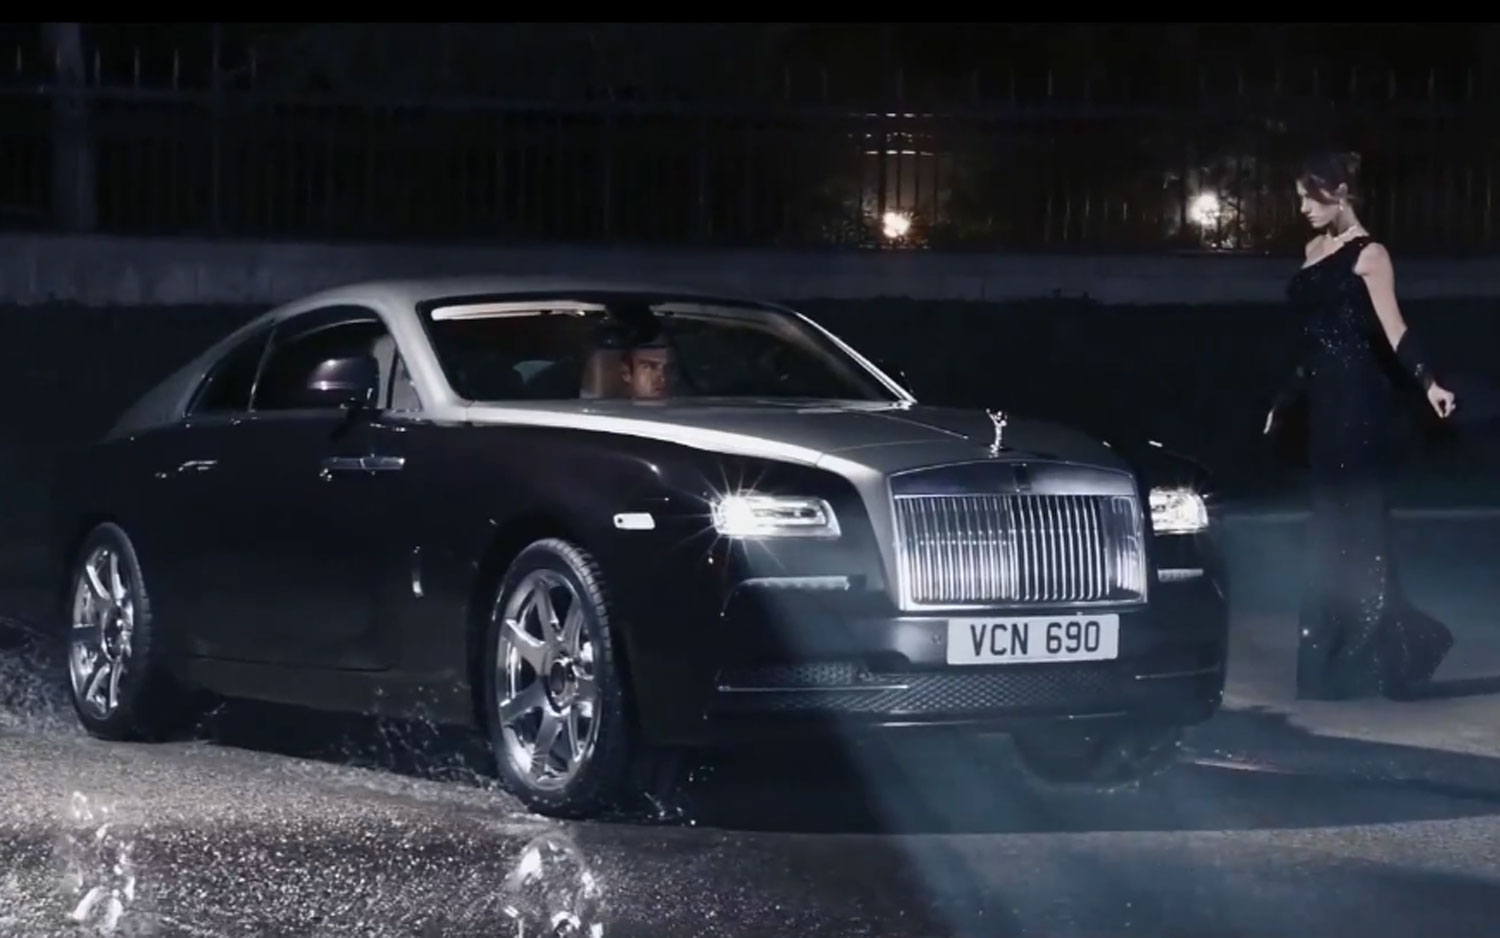 This Rolls-Royce Wraith Video Required 100 DSLR Cameras